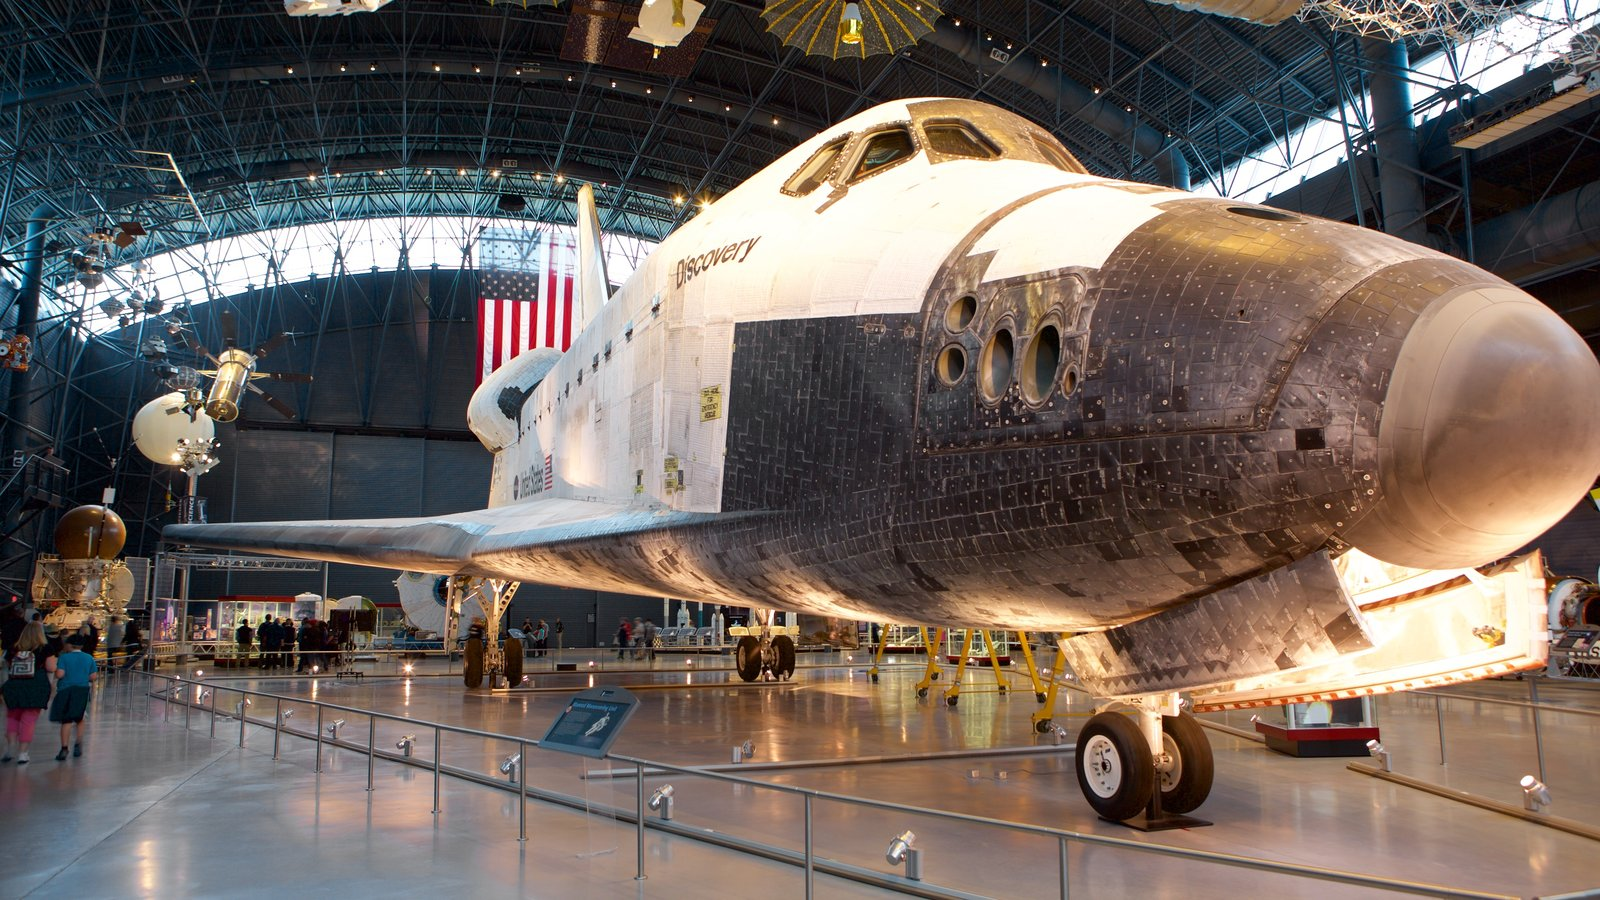 National Air and Space Museum Steven F. Udvar-Hazy Center mostrando aeronave e vistas internas